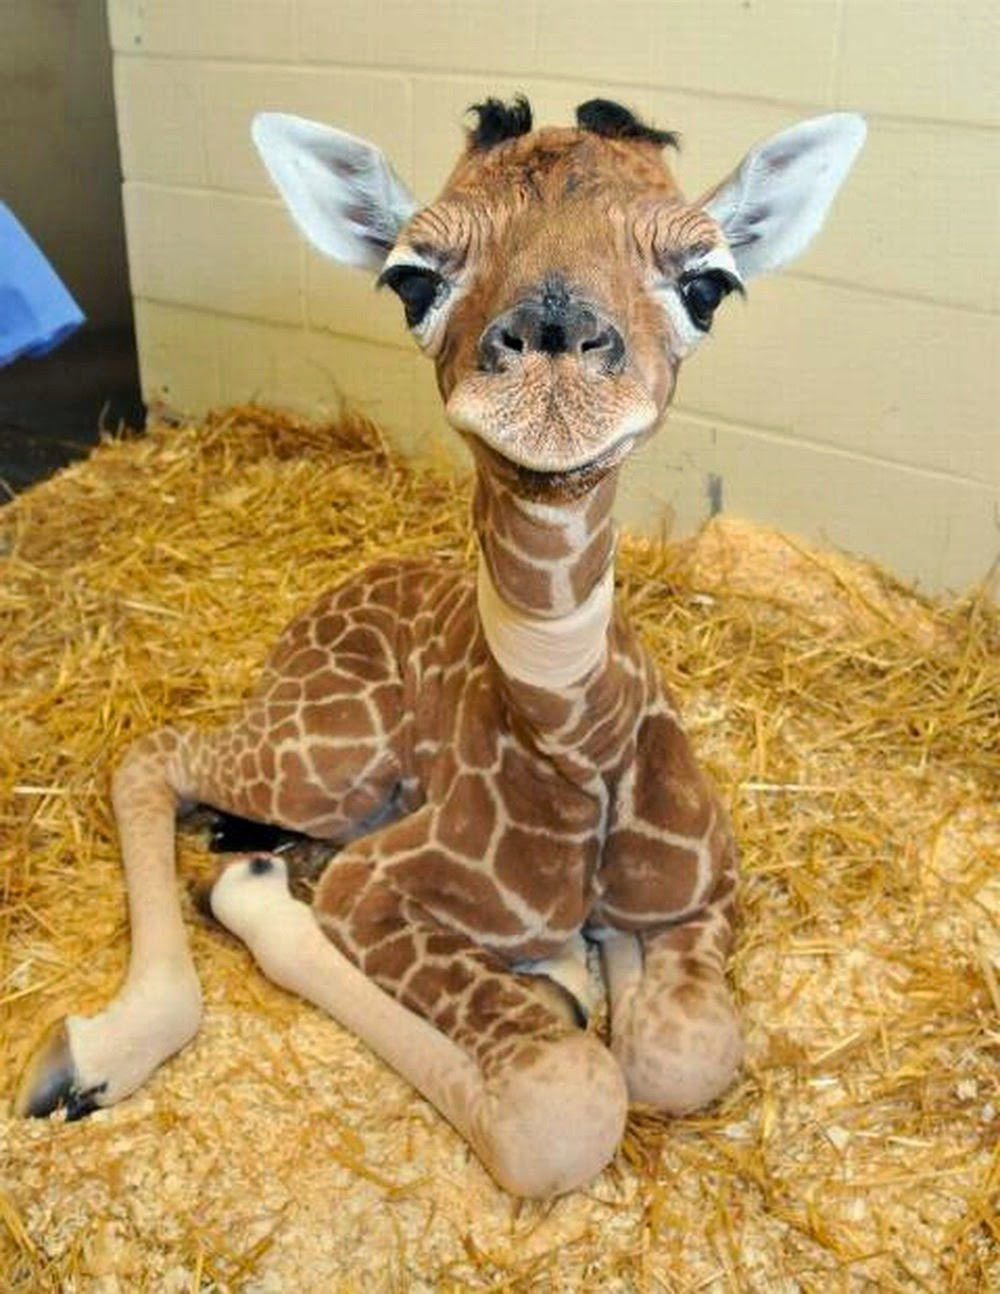 23 Mind-Blowing Animal Pictures